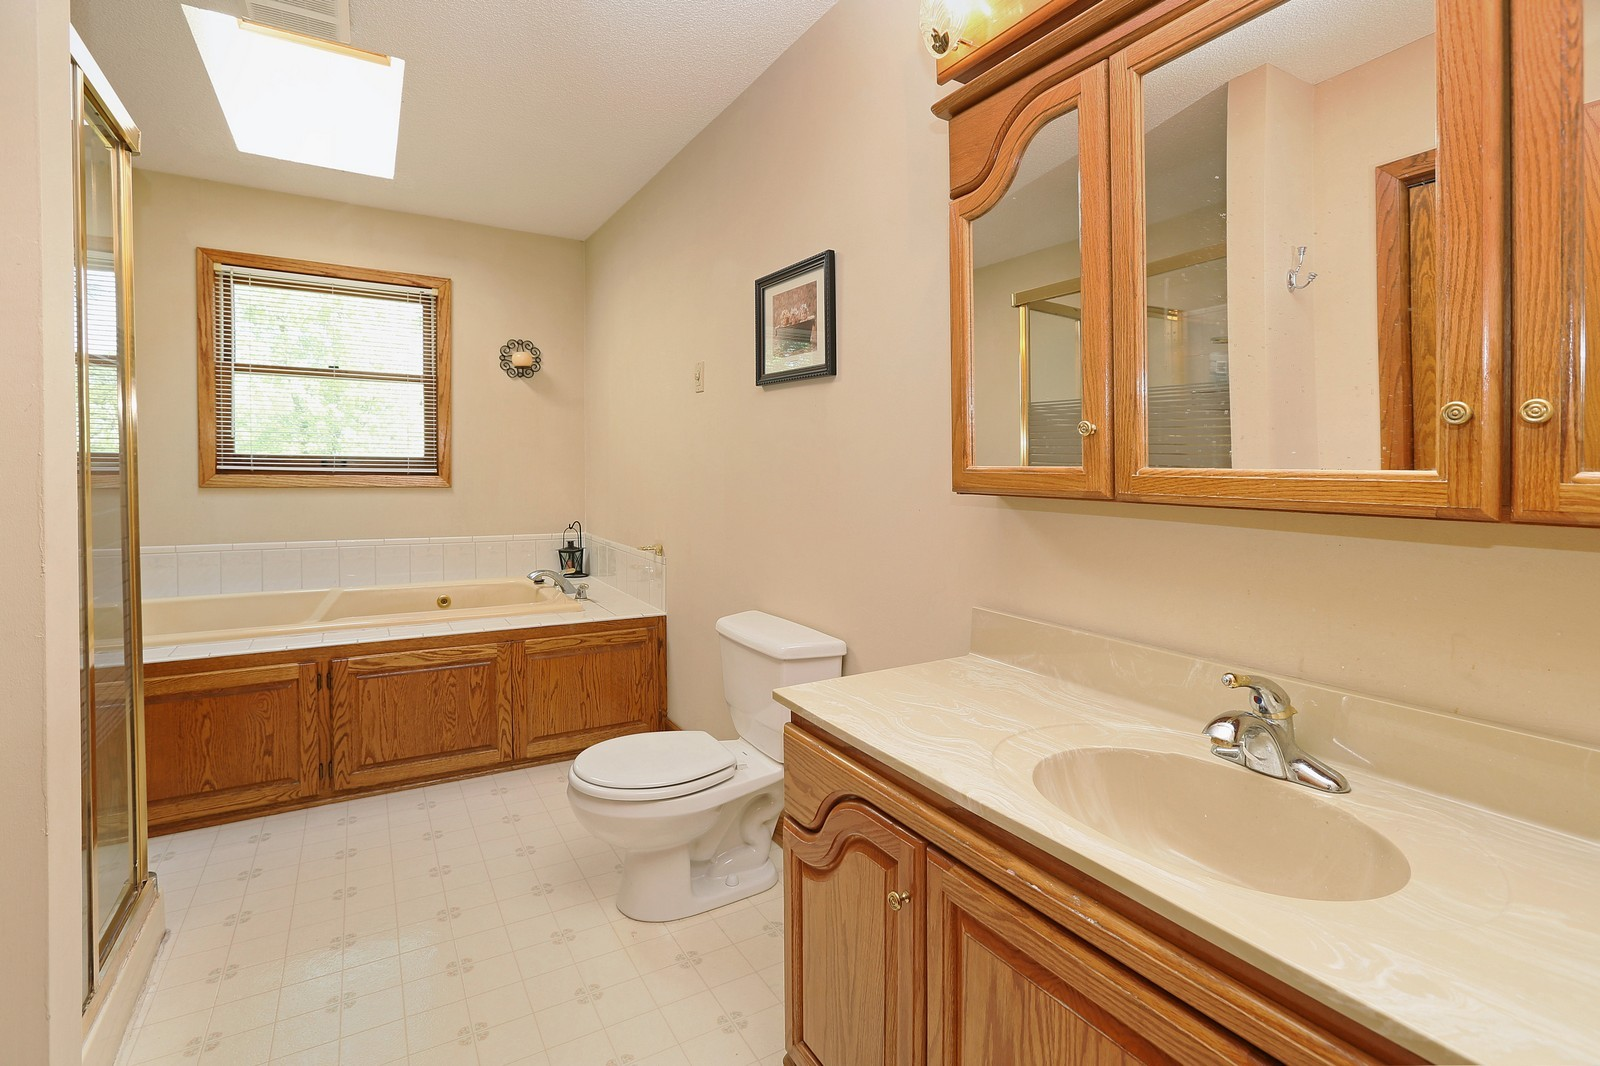 Real Estate Photography - 25917 Xylite St NE, Isanti, MN, 55040 - Bathroom